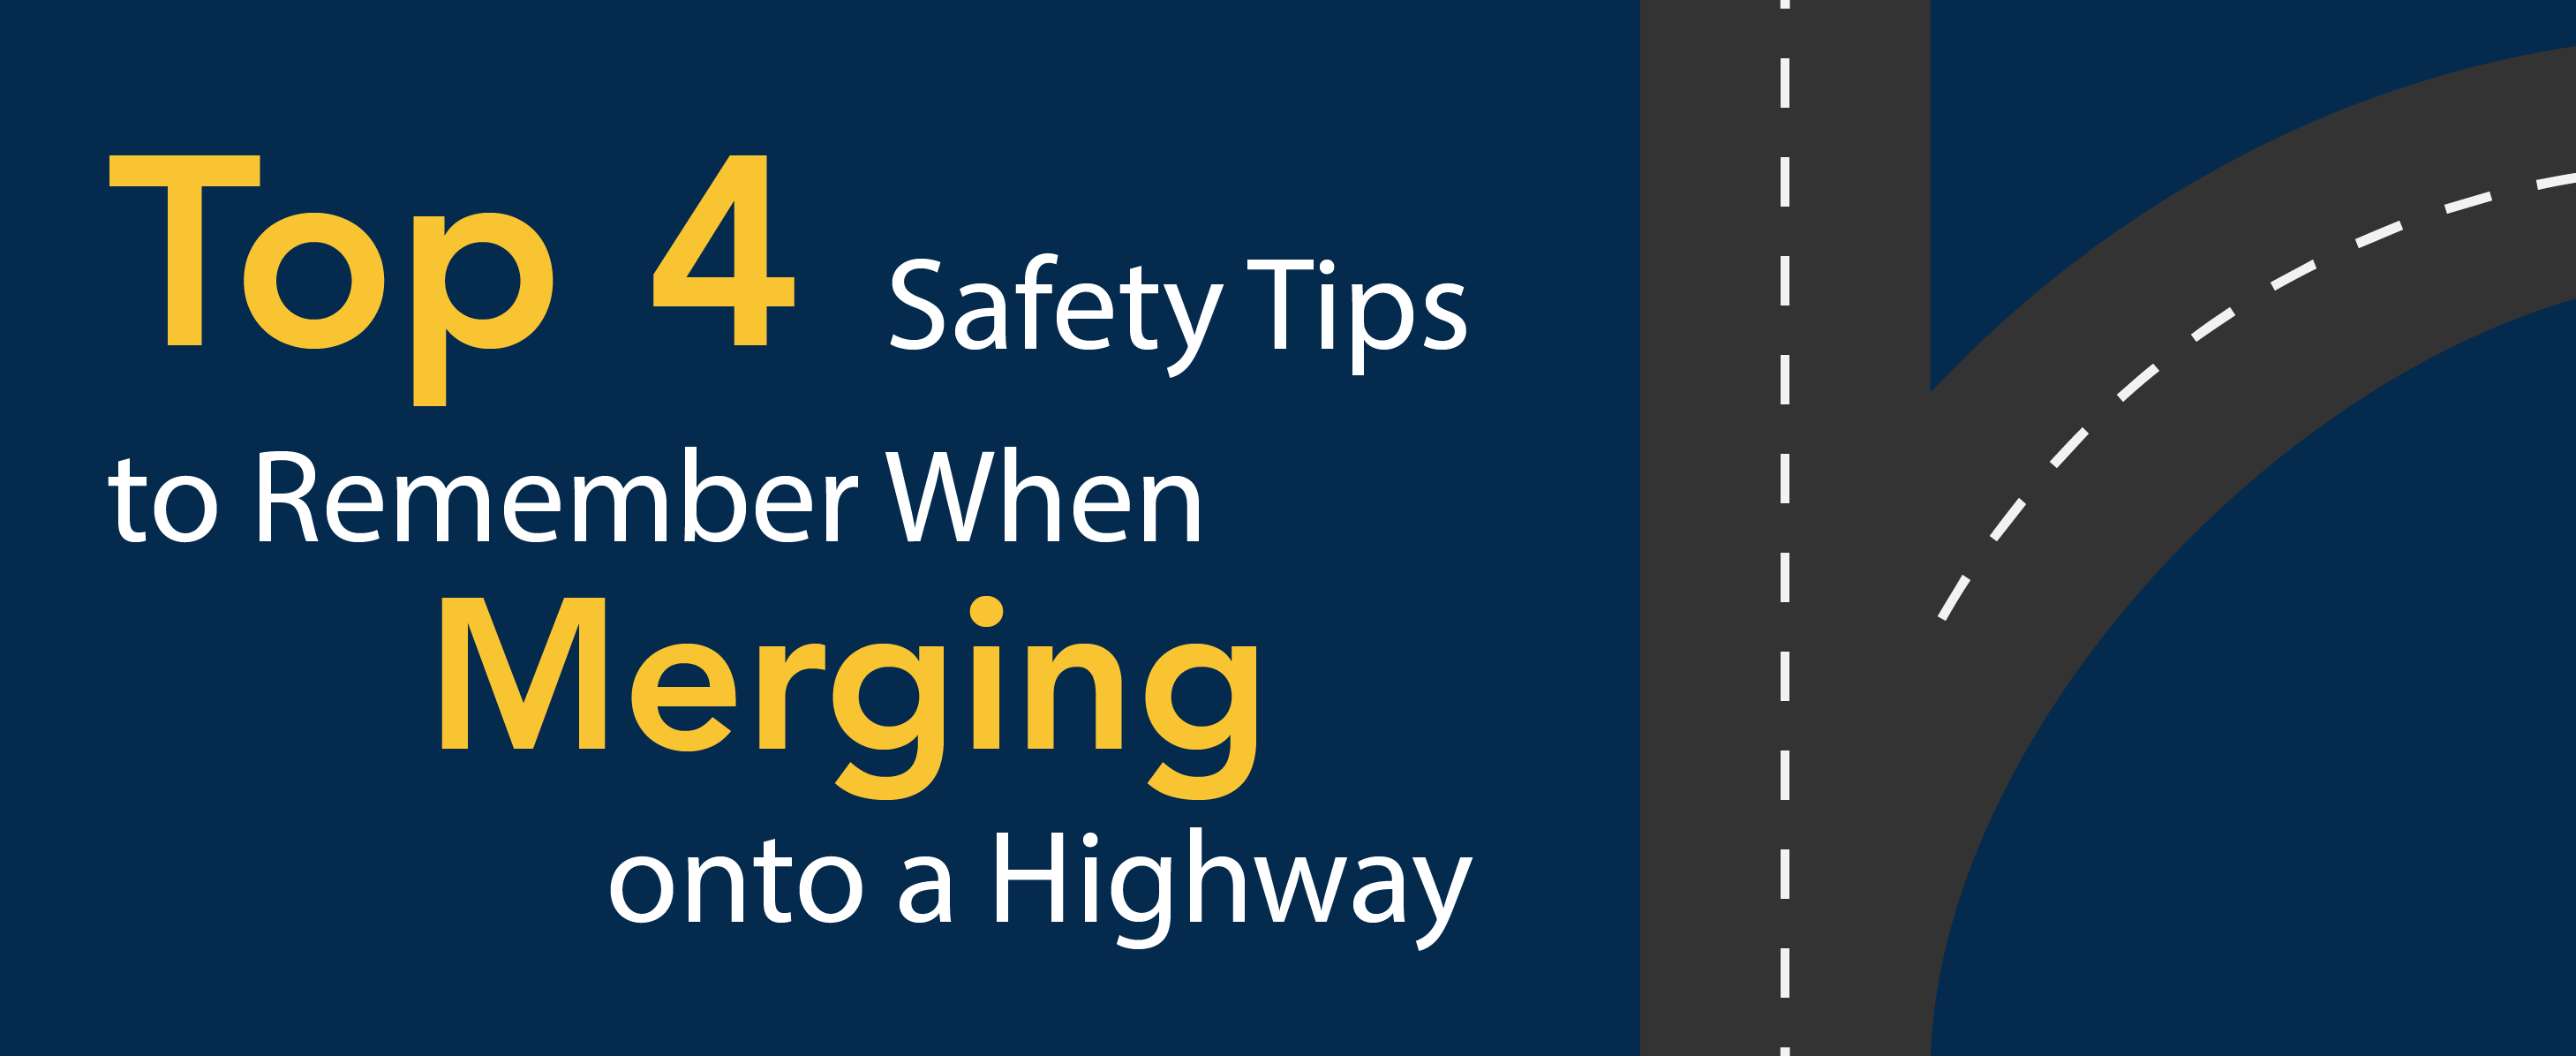 Top 4 safety tips to remember when merging onto a highway